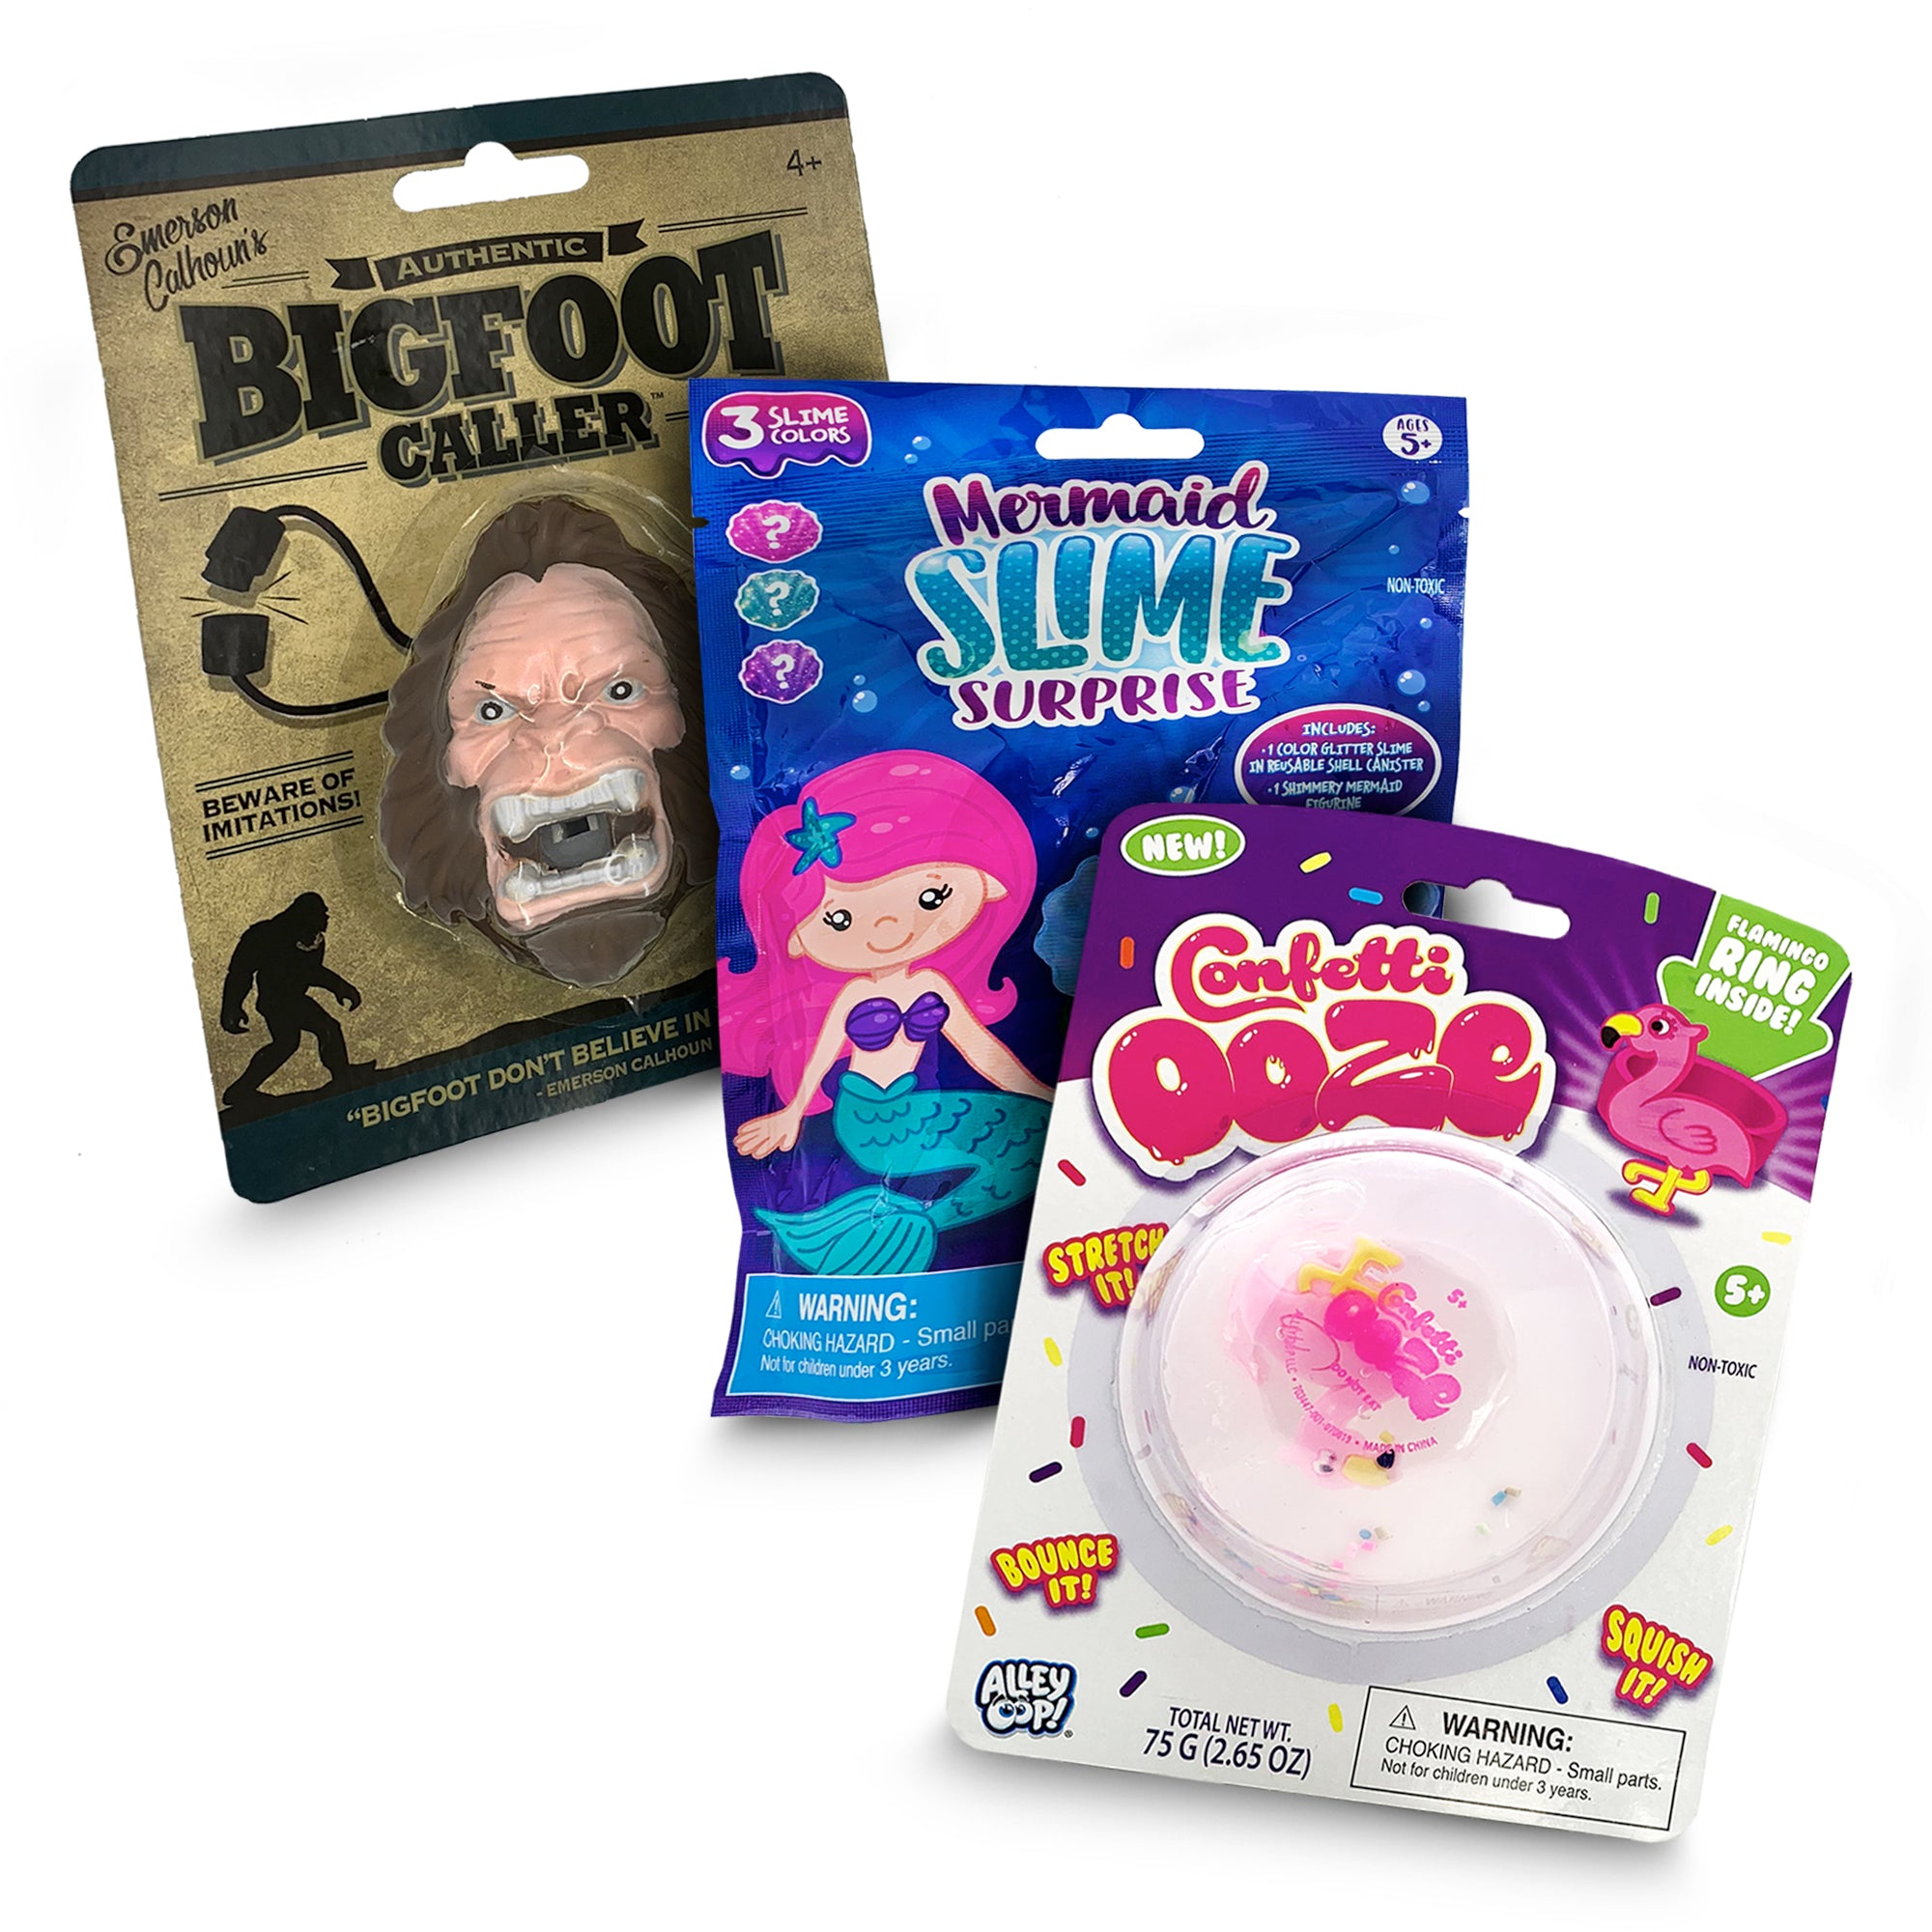 3 Pack Christmas Toys Stocking Stuffer with Bigfoot Caller, Flamingo Confetti Ooze, and Collectible Shimmering Magical Mermaid Slime Surprise